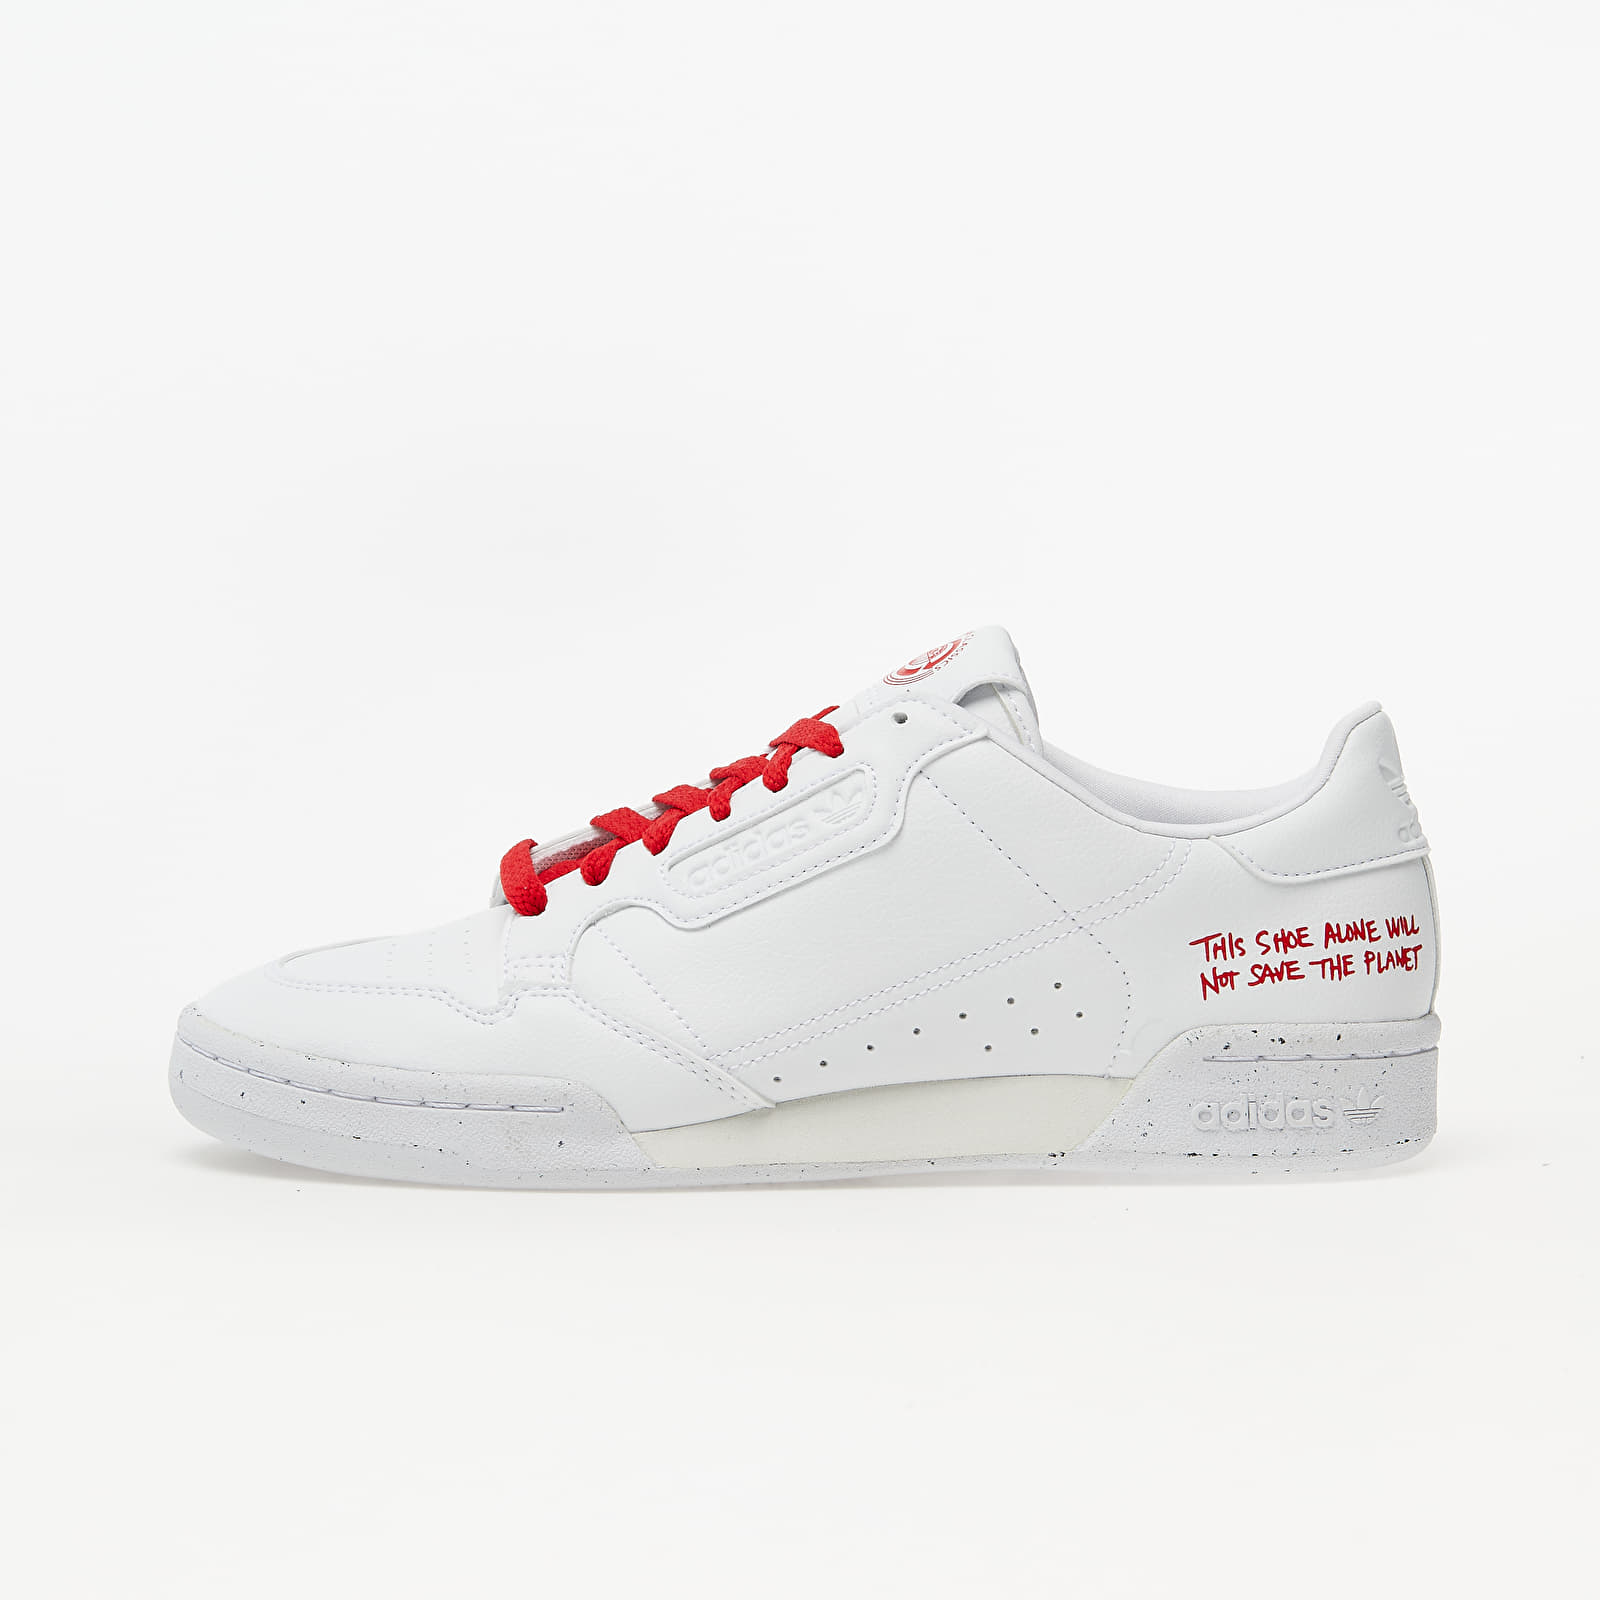 Men's shoes adidas Continental 80 Clean Classics Ftw White/ Ftw White/ Scarlet